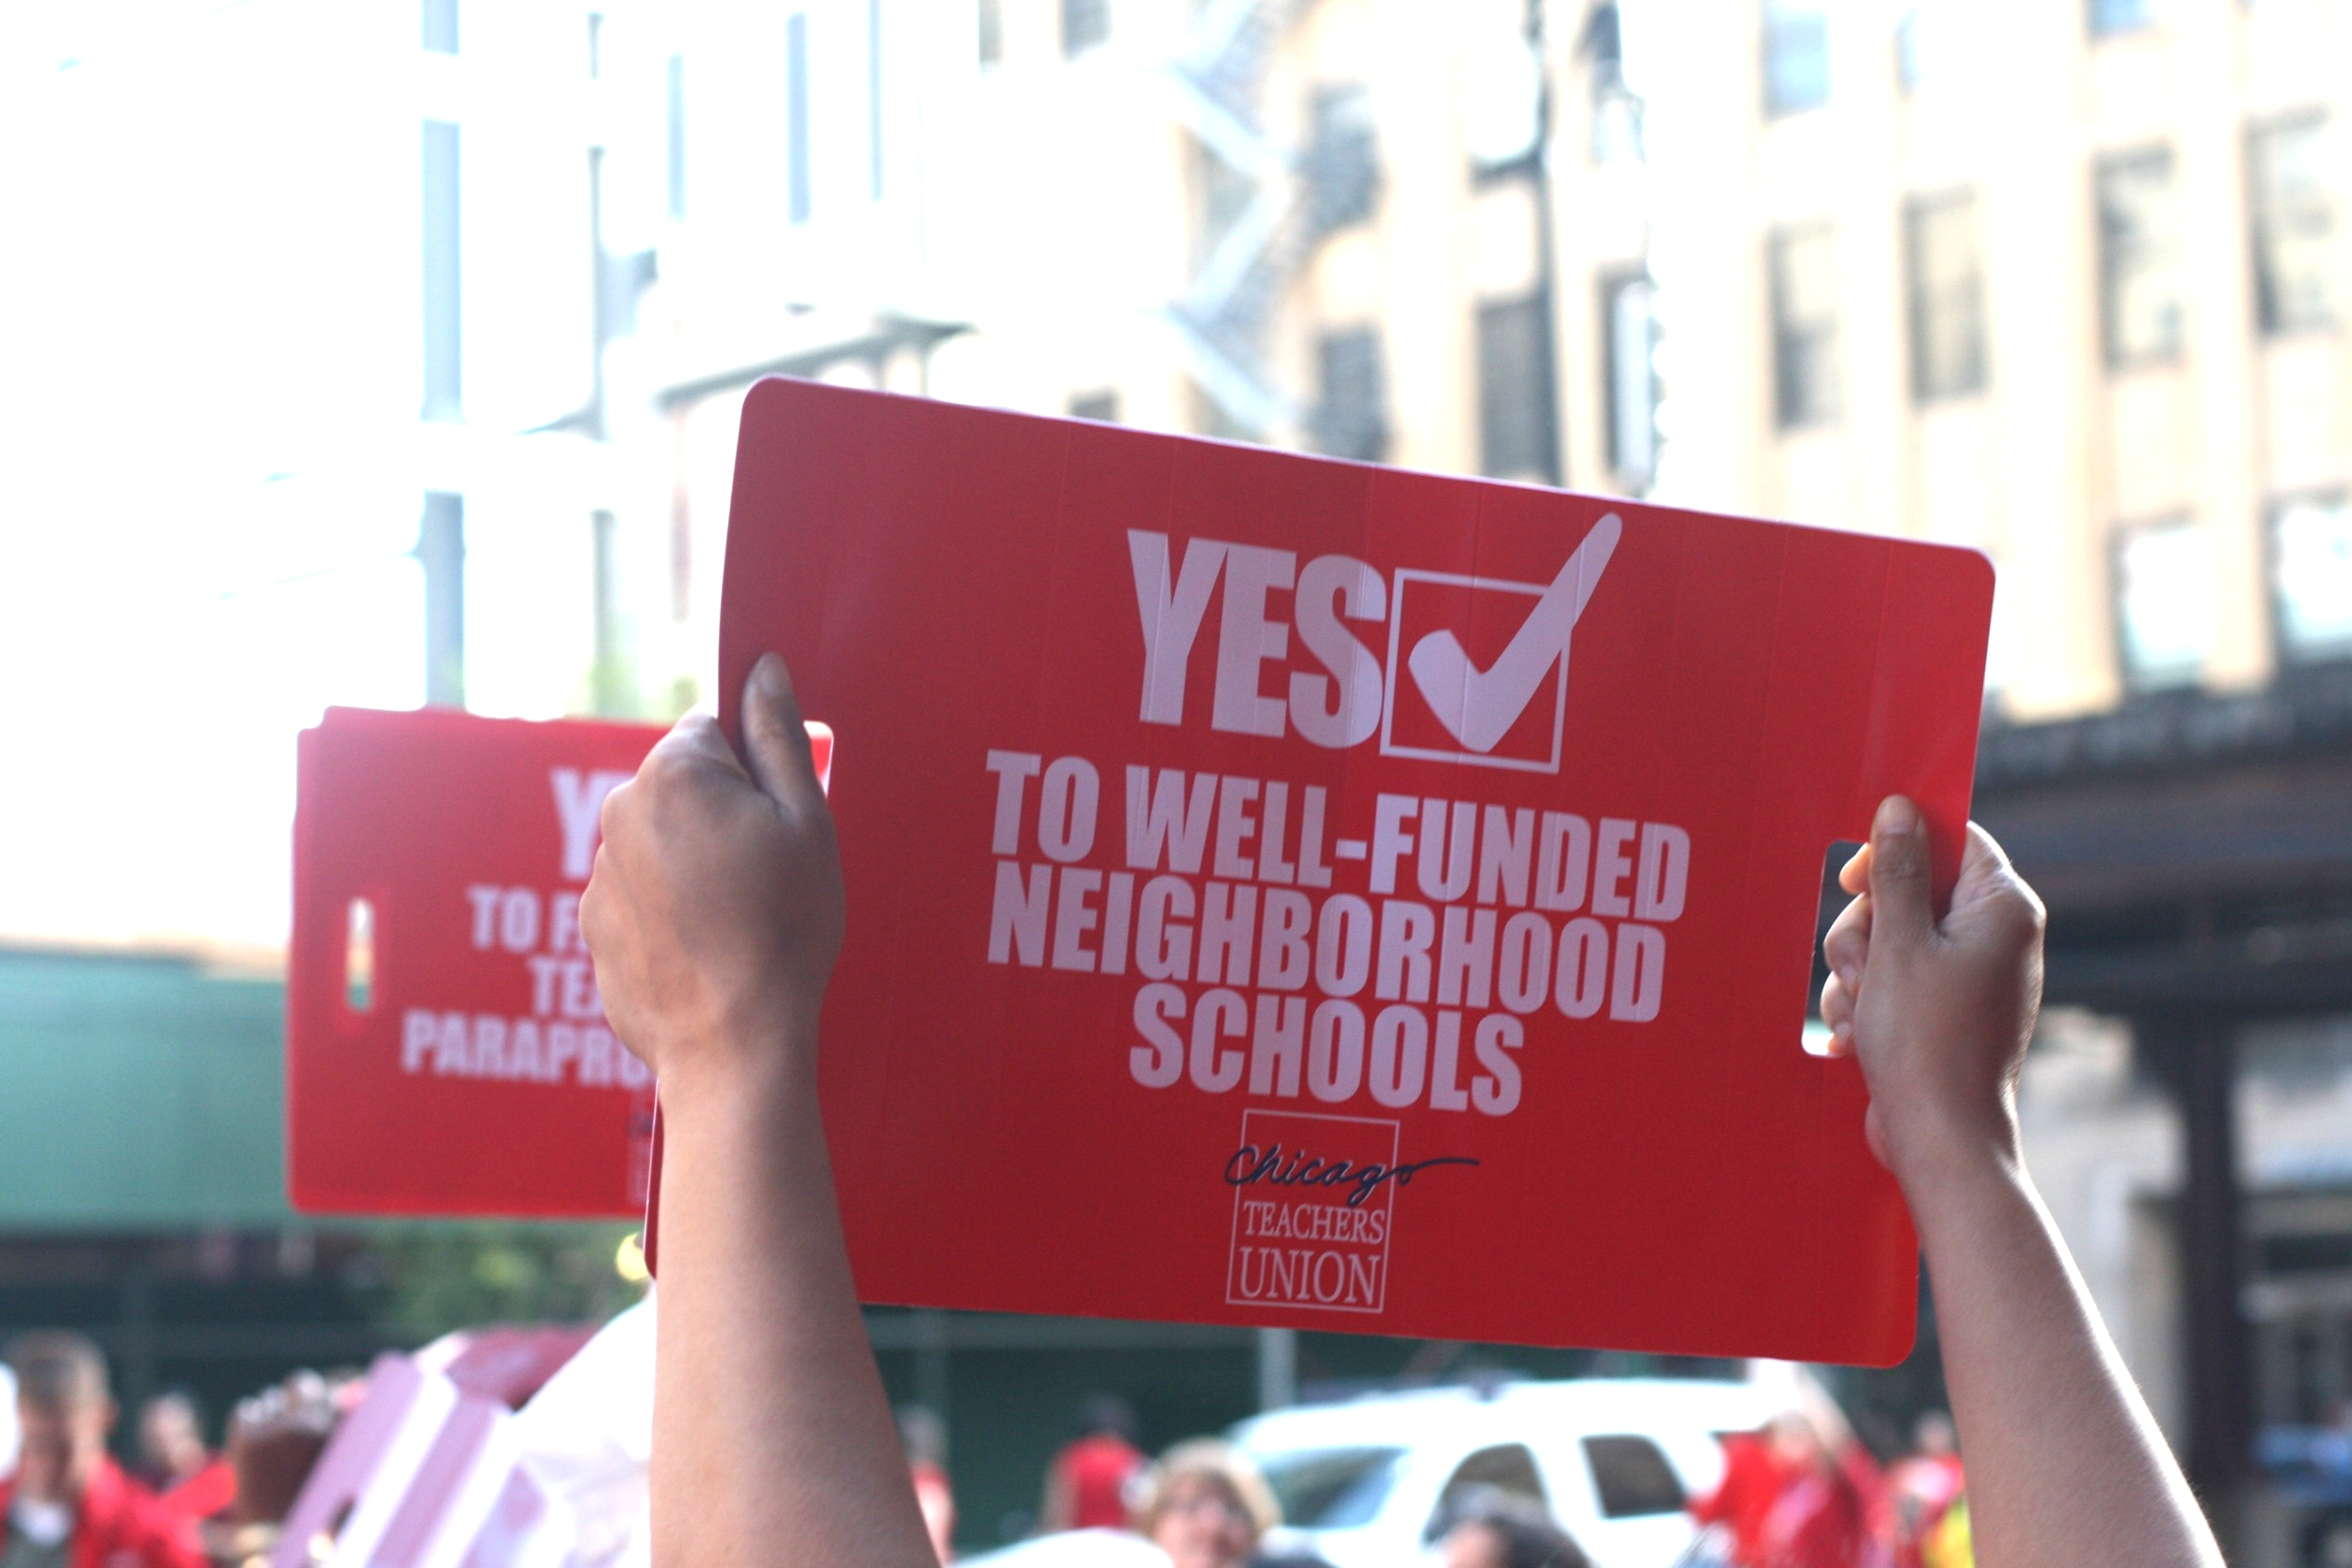 Yes to well-funded schools